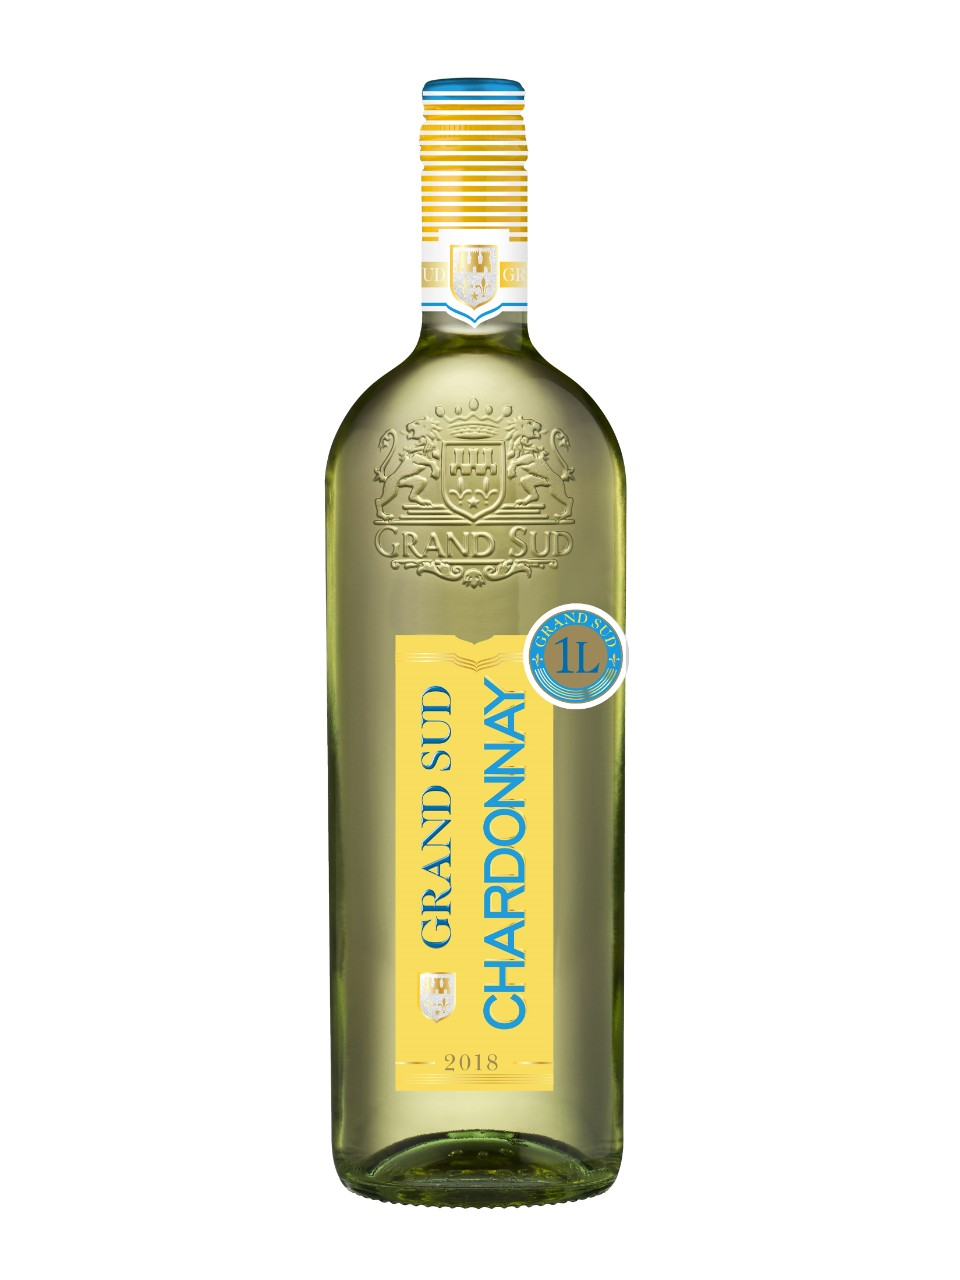 Grand sud chardonnay vdfrance lcbo for Carrelage grand sud